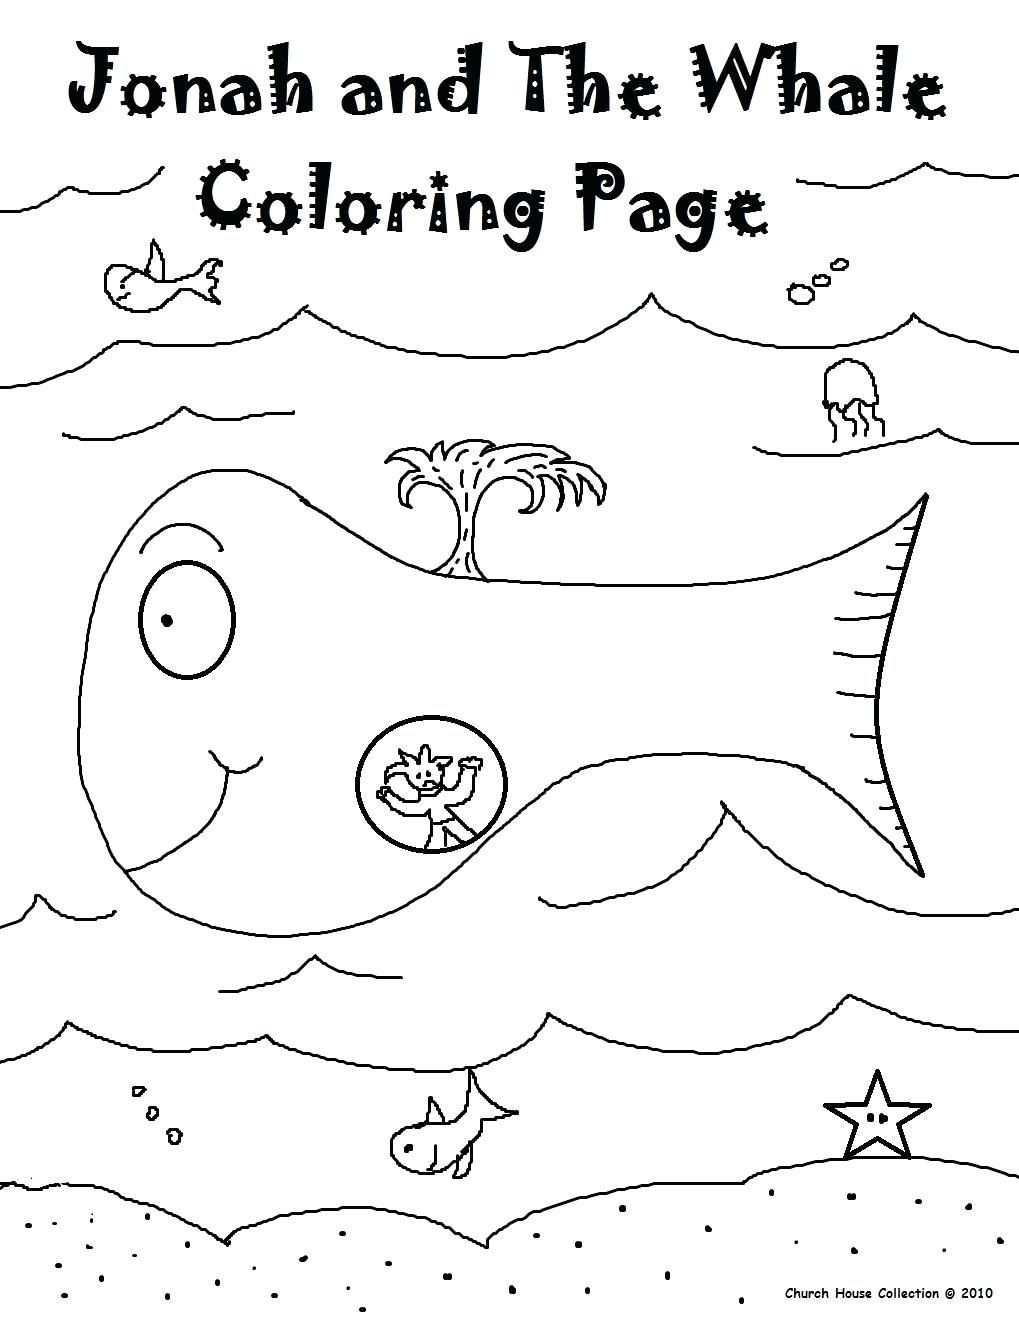 Jonah And The Whale Coloring Pages Jonah And The Whale Coloring Pages 23 With Color Gerrydraaisma Entitlementtrap Com Whale Coloring Pages Jonah And The Whale Coloring Pages